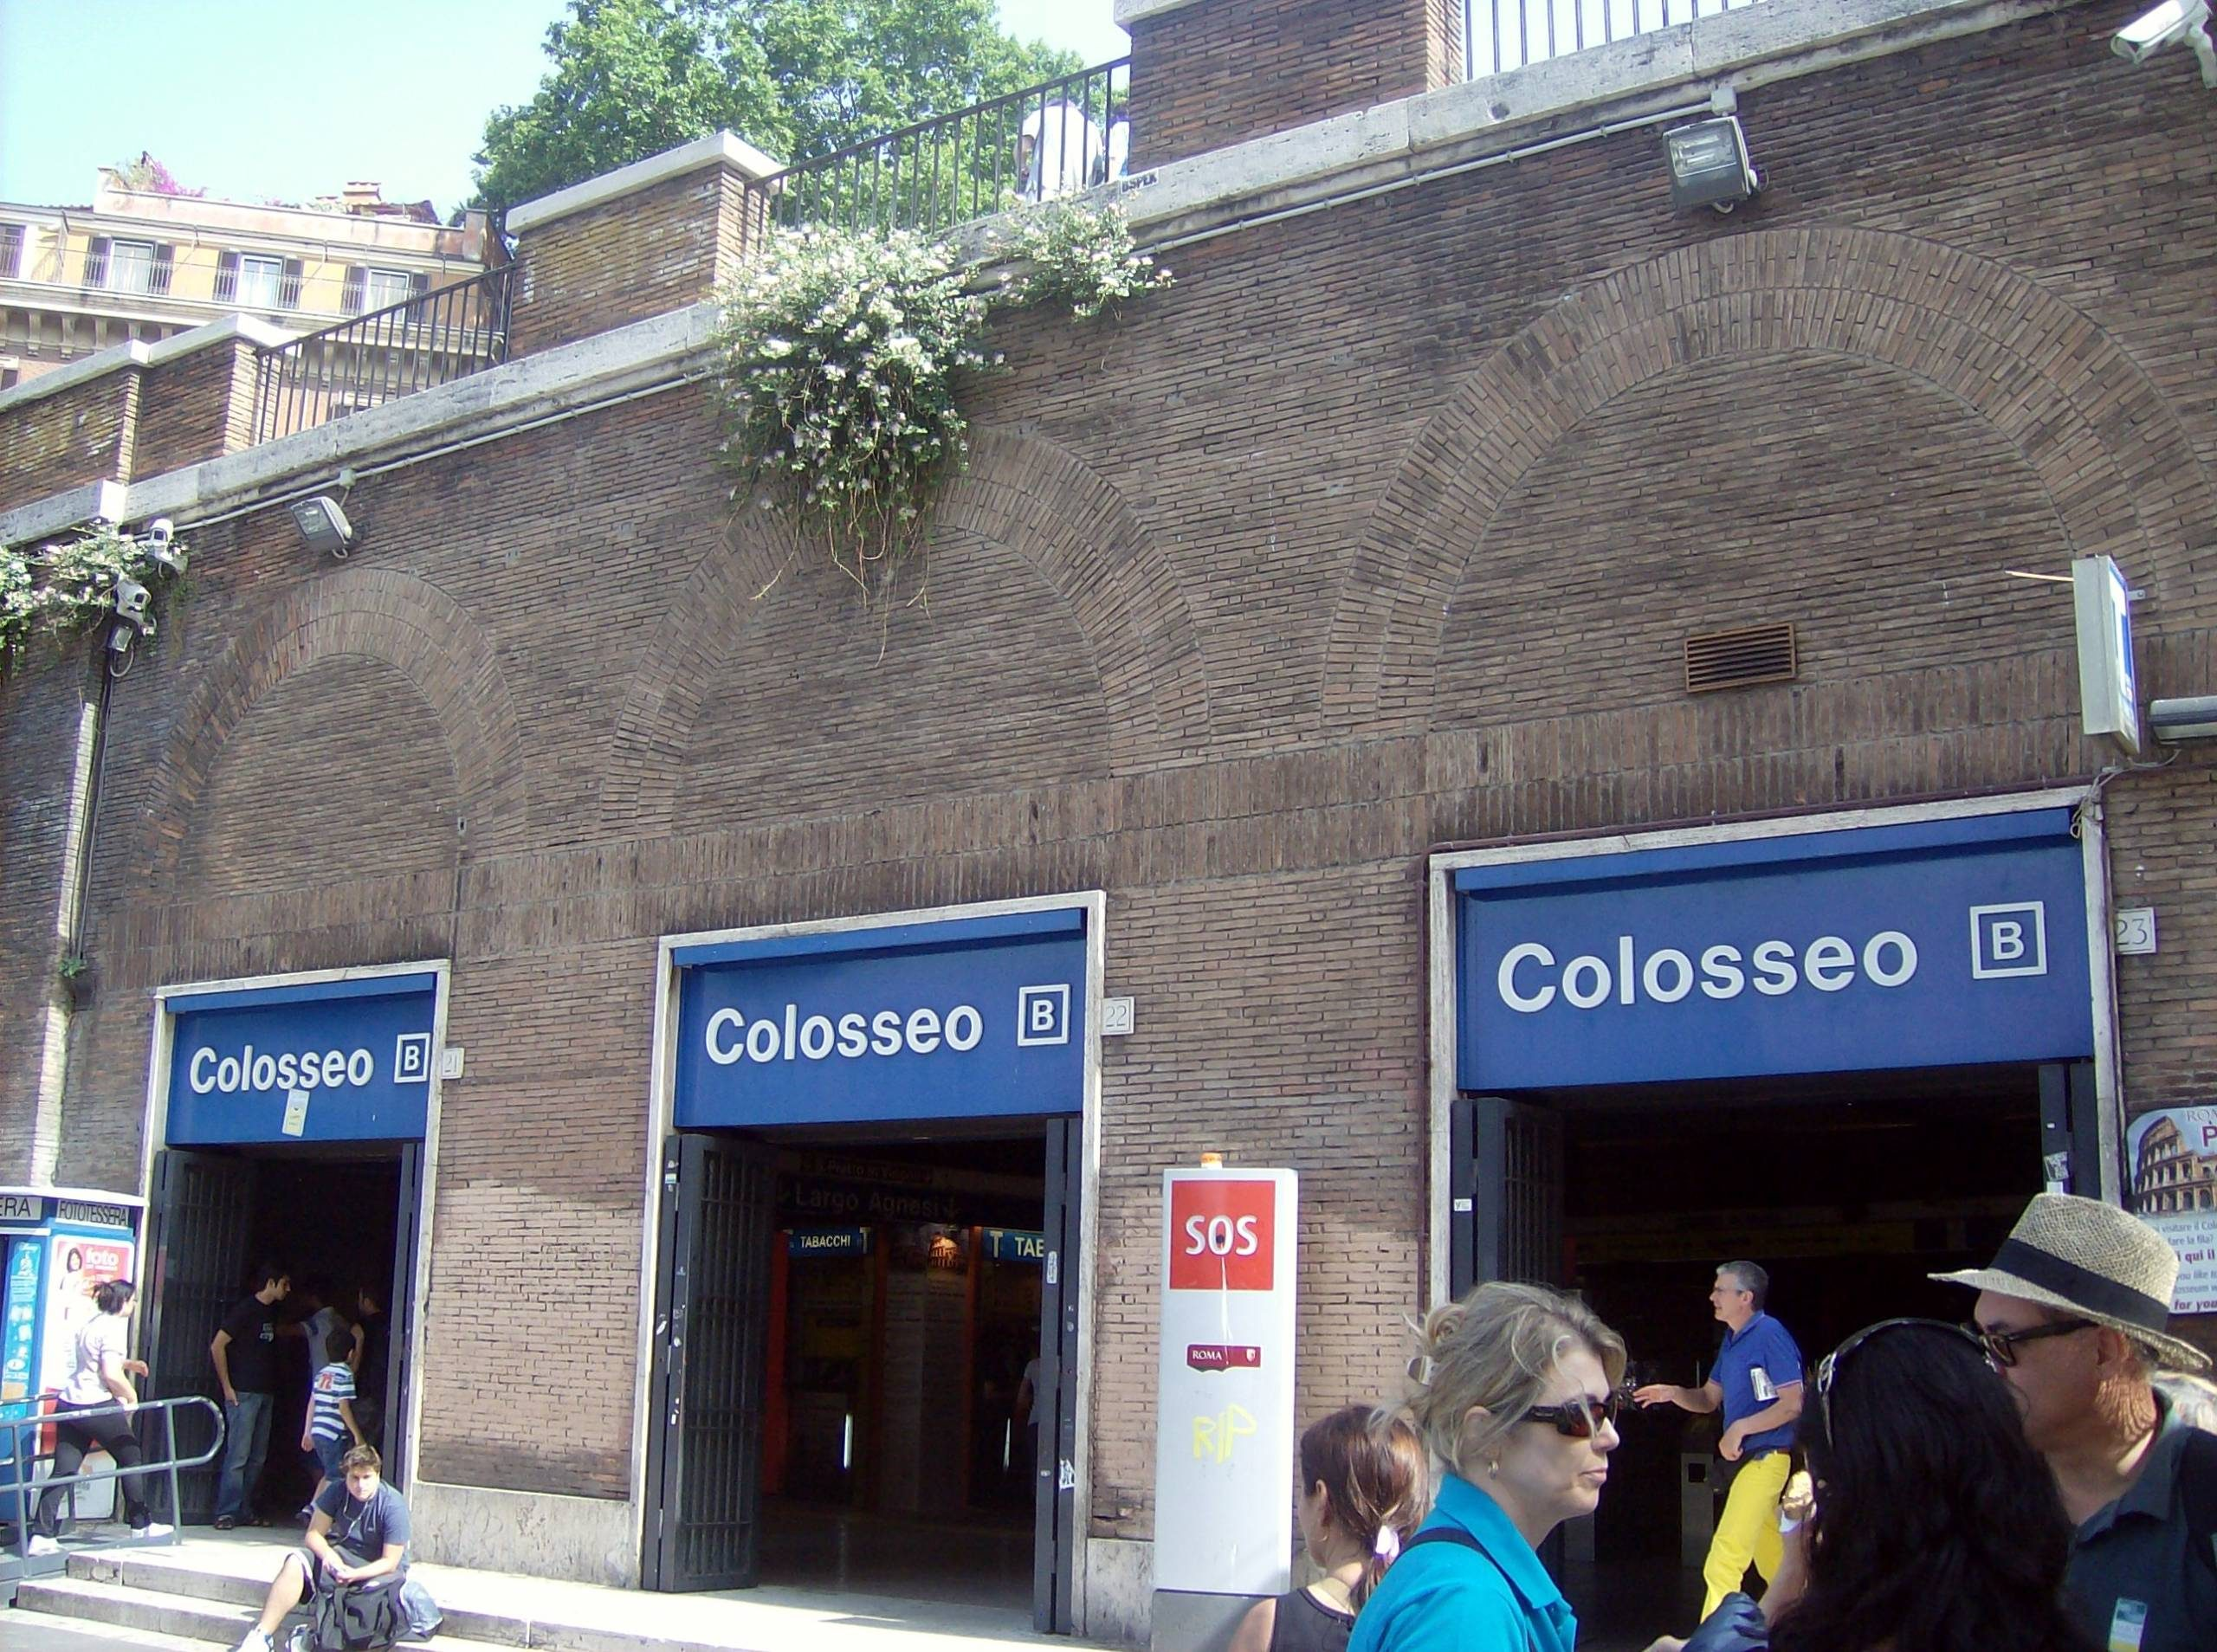 métro station Colosseo Rome.